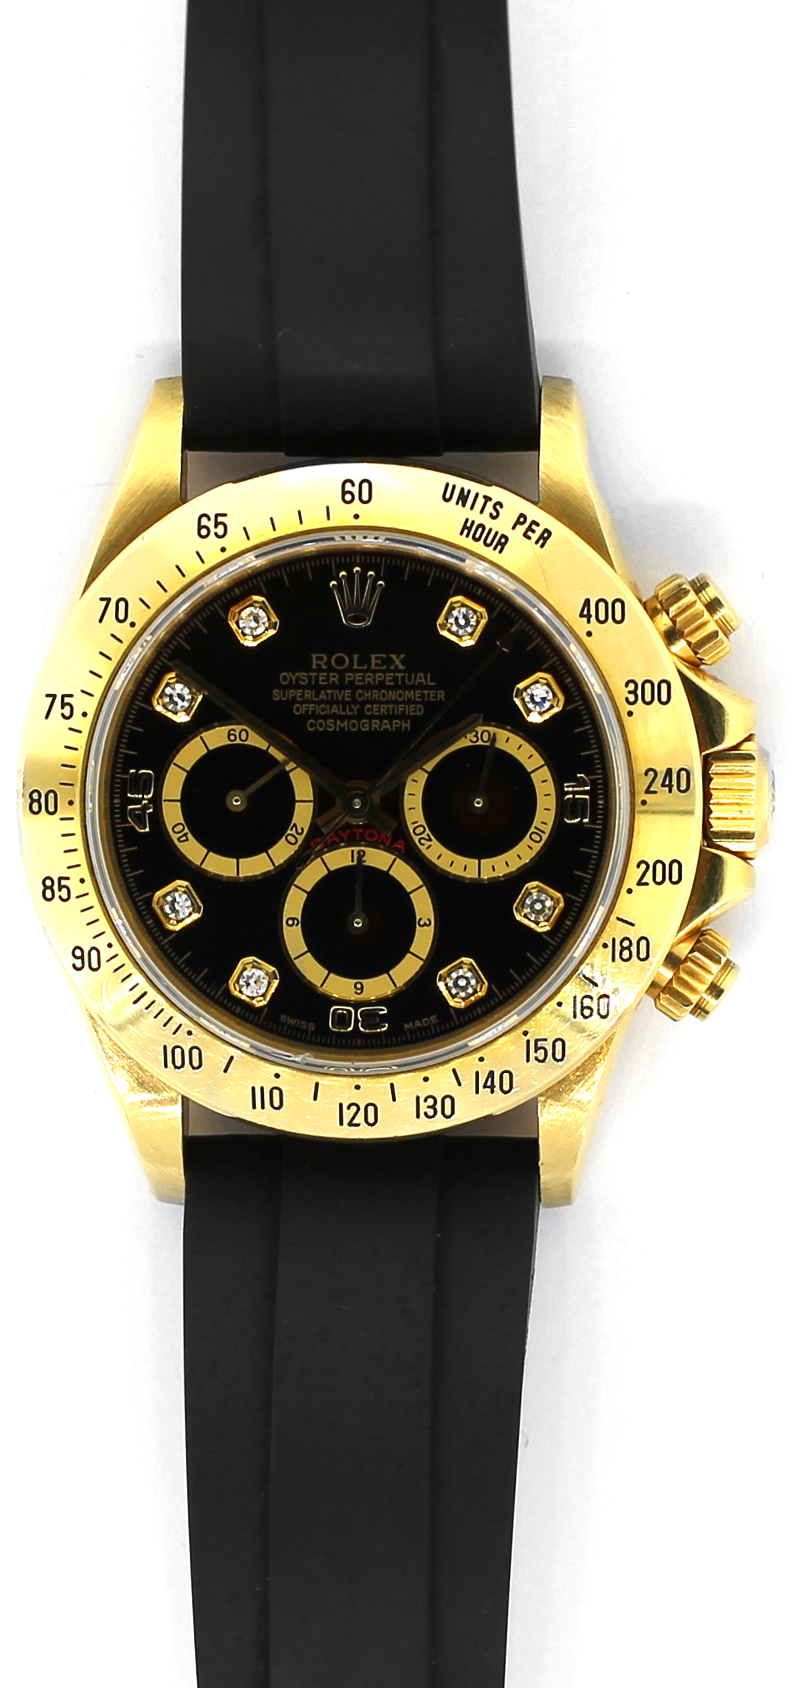 Rolex 18k Yellow Gold Daytona Black Factory Diamond Dial with Zenith Caliber Movement 16528 on Rolex Oyster Flex Rubber Strap with Box & Booklets